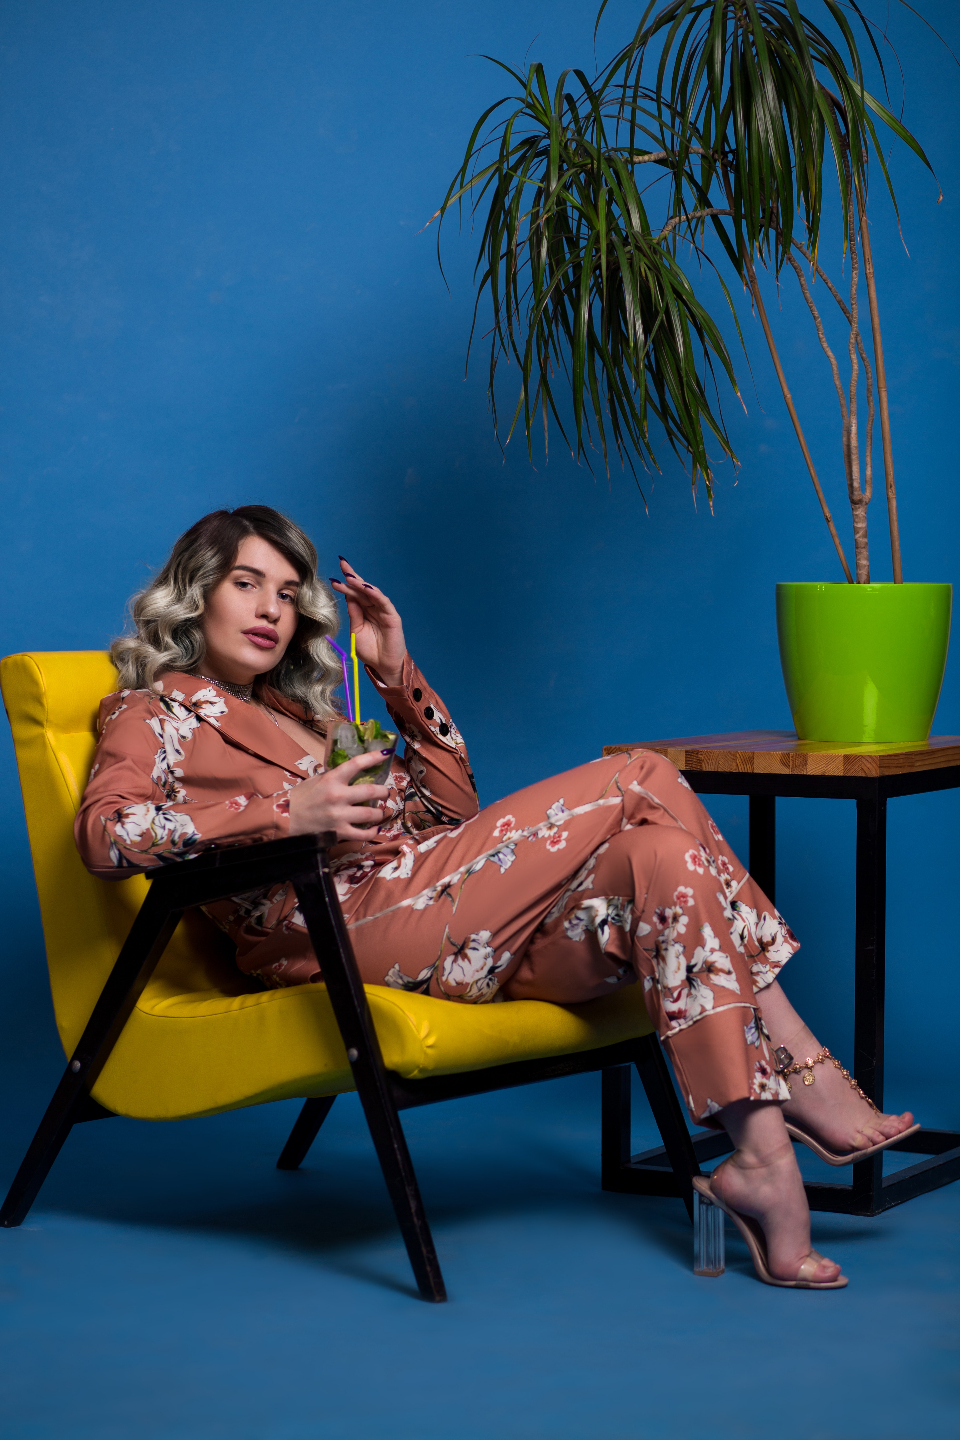 cool woman chilling cocktail yellow chair blue wall green vase plant highheels headphones drink straw